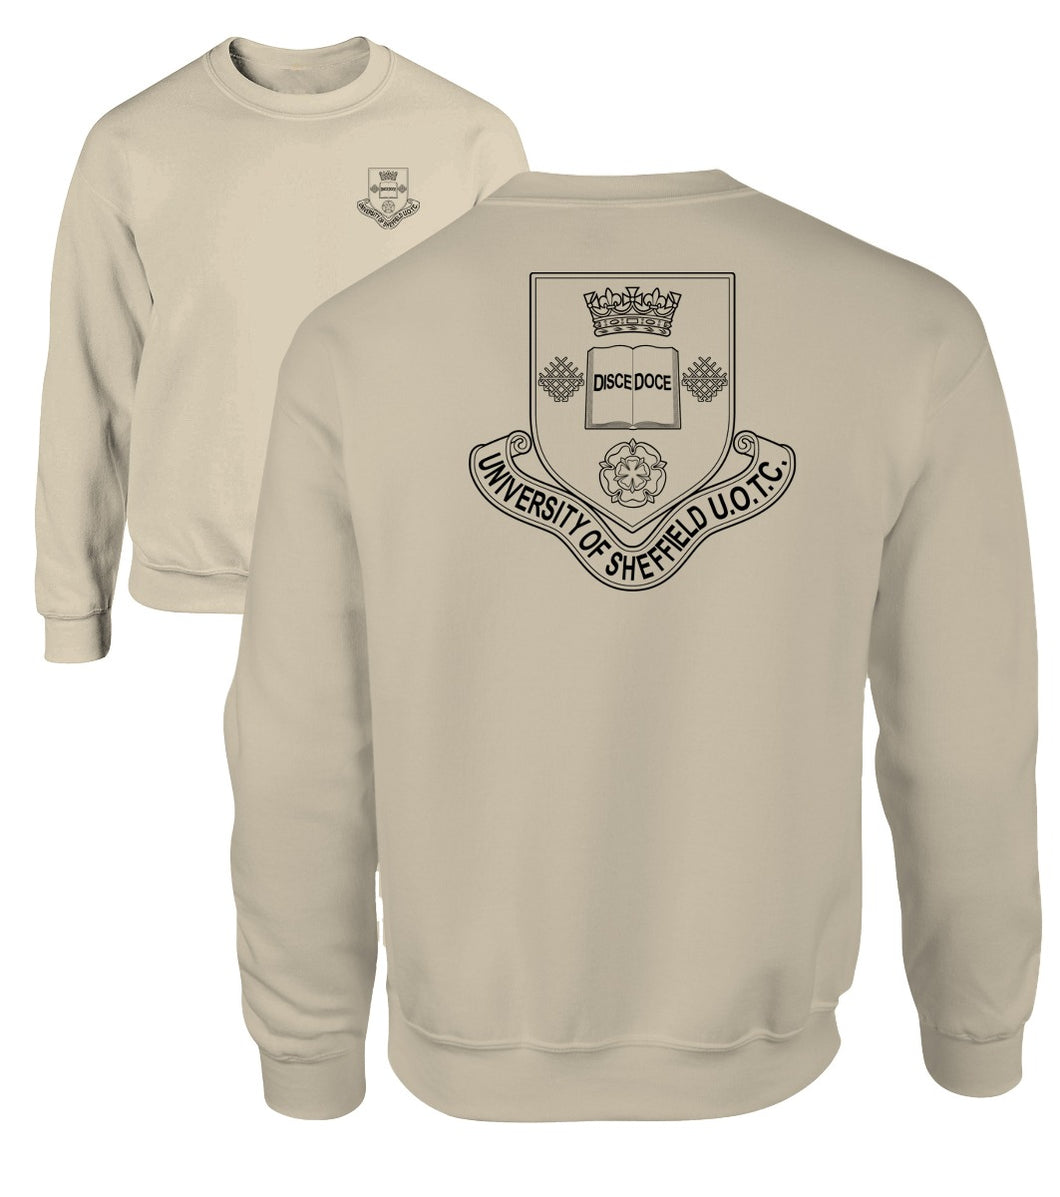 Double Printed Sheffield (UOTC) Sweatshirt